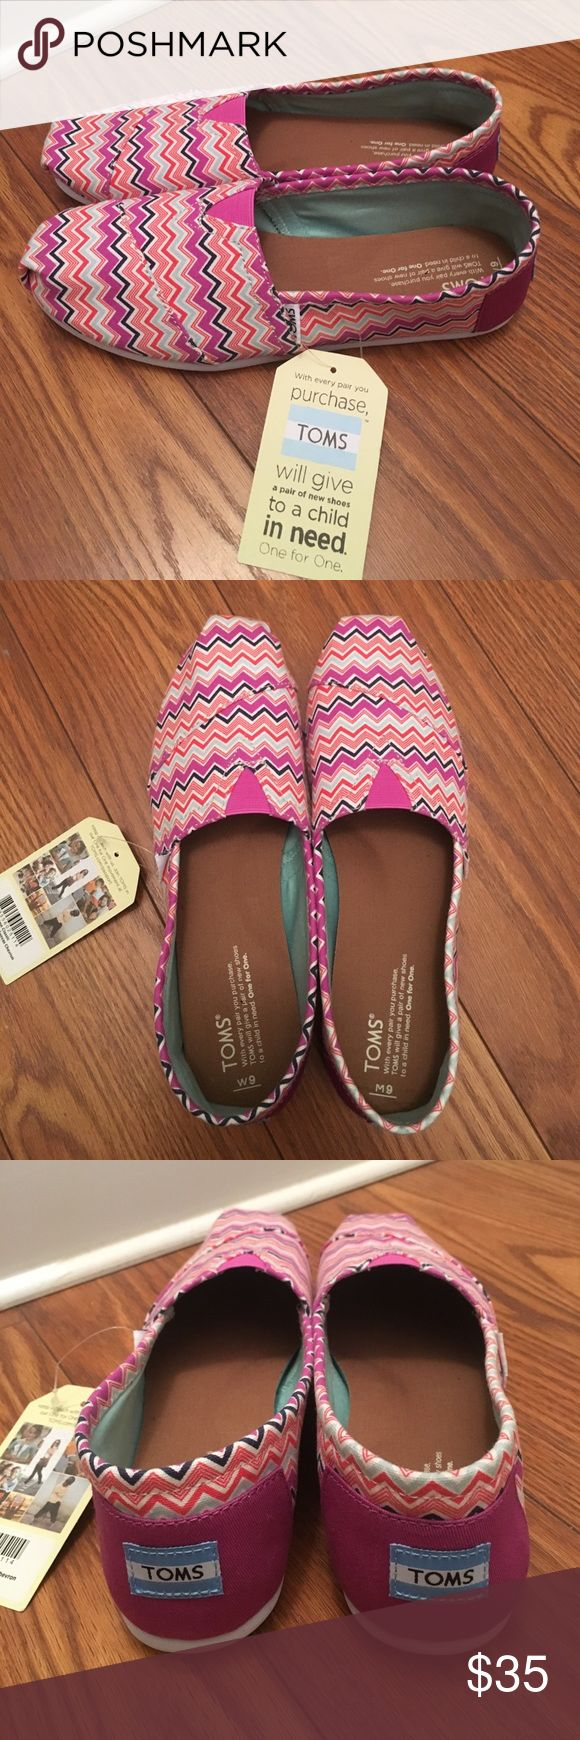 Brand New Pink Chevron Toms Slip Ons Brand new pair of toms in a cute multi-color Chevron pattern. I'm not sure how this happened but the right shoe has a Men's size 9 insert and the left shoe has the standard women's insert. Personally there isn't any difference when wearing them and the men's one is a little big for the shoe but it's not noticeable. Anyways selling them for less because of it. TOMS Shoes